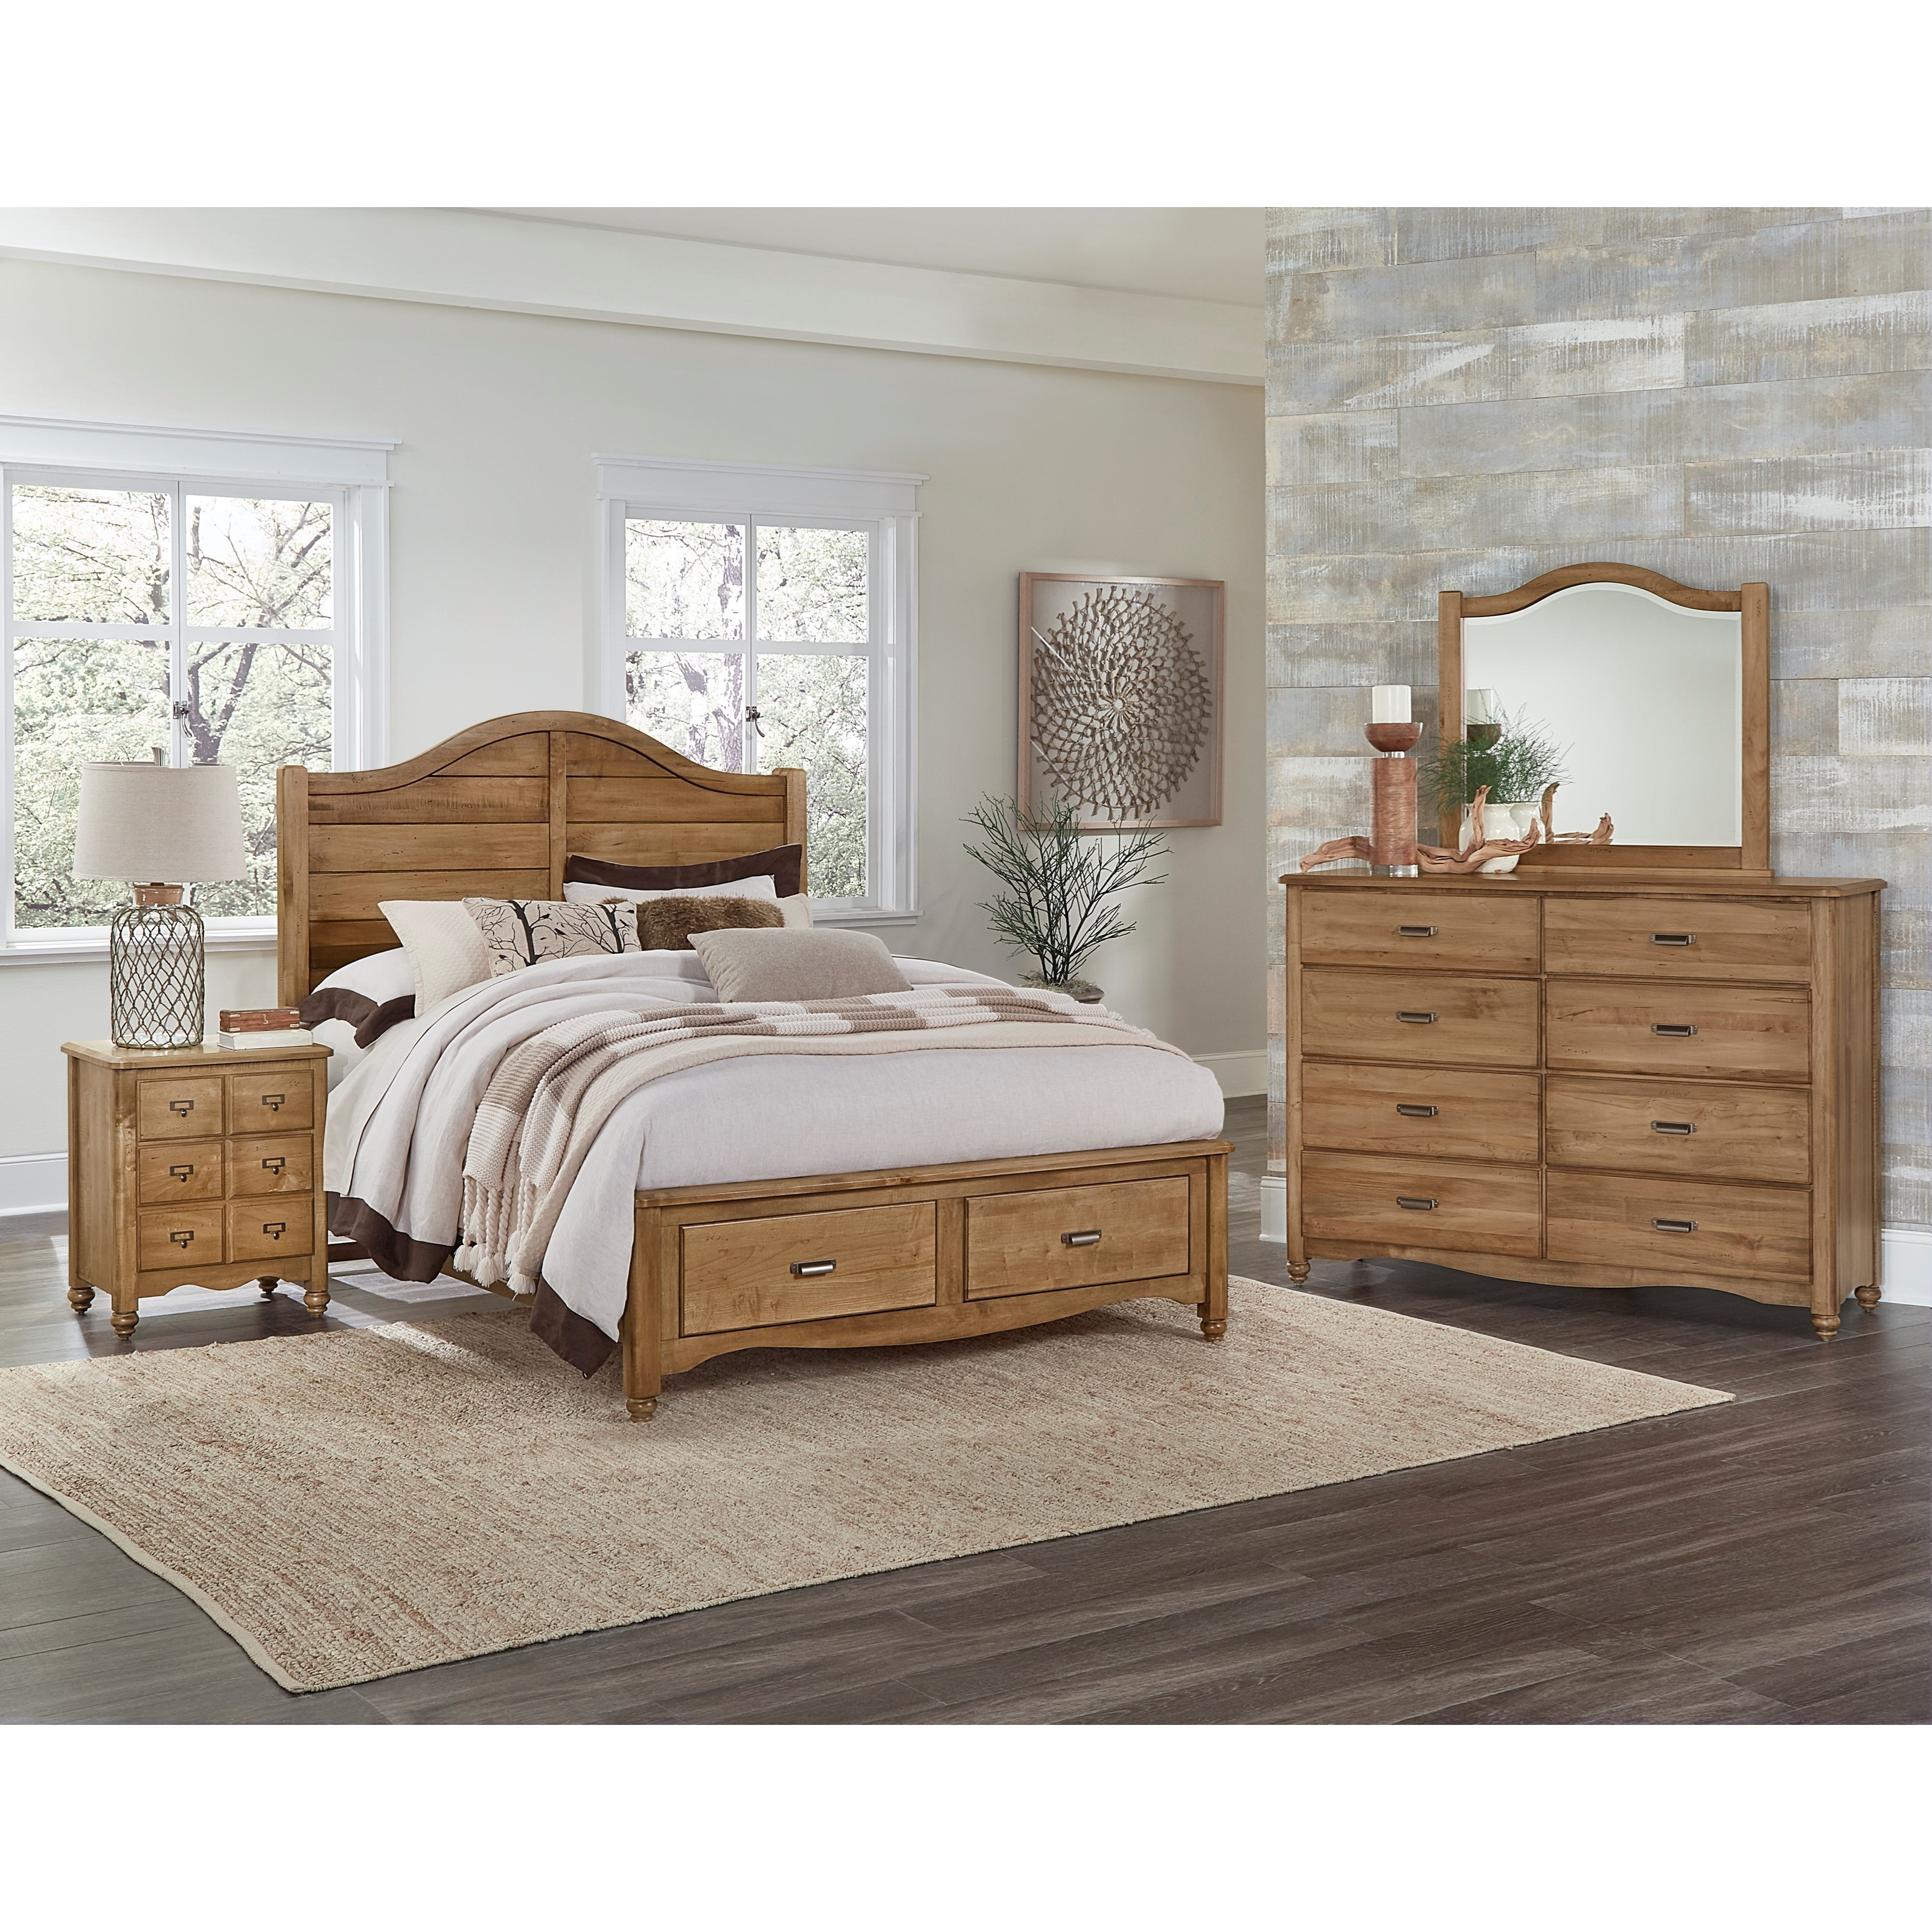 vaughan bassett american maple queen bedroom group belfort furniture bedroom groups. Black Bedroom Furniture Sets. Home Design Ideas